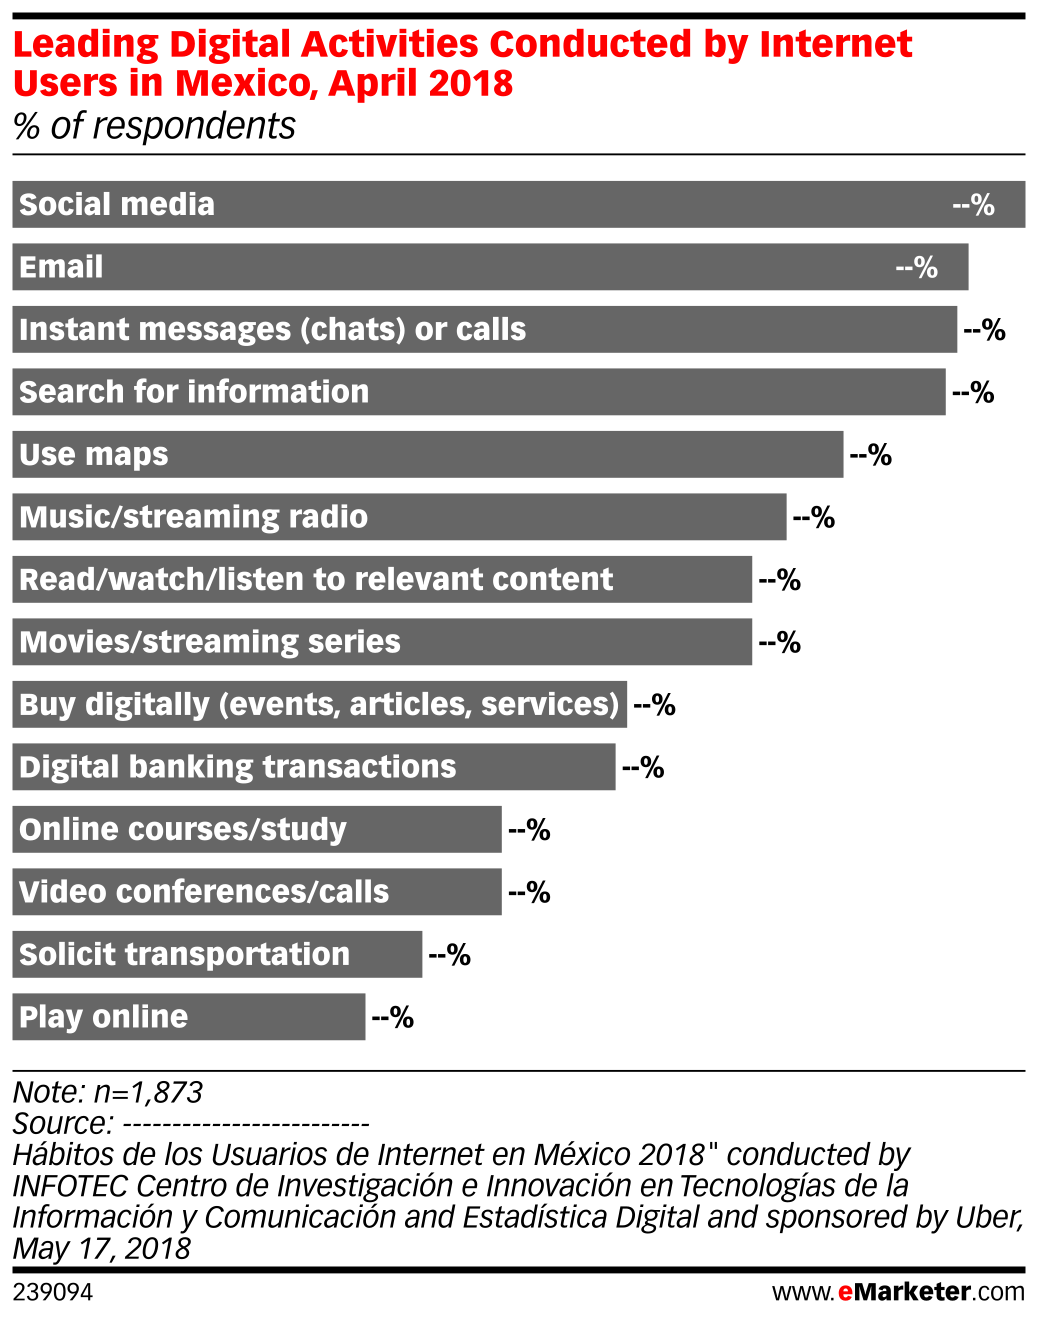 Leading Digital Activities Conducted by Internet Users in Mexico, April 2018 (% of respondents)